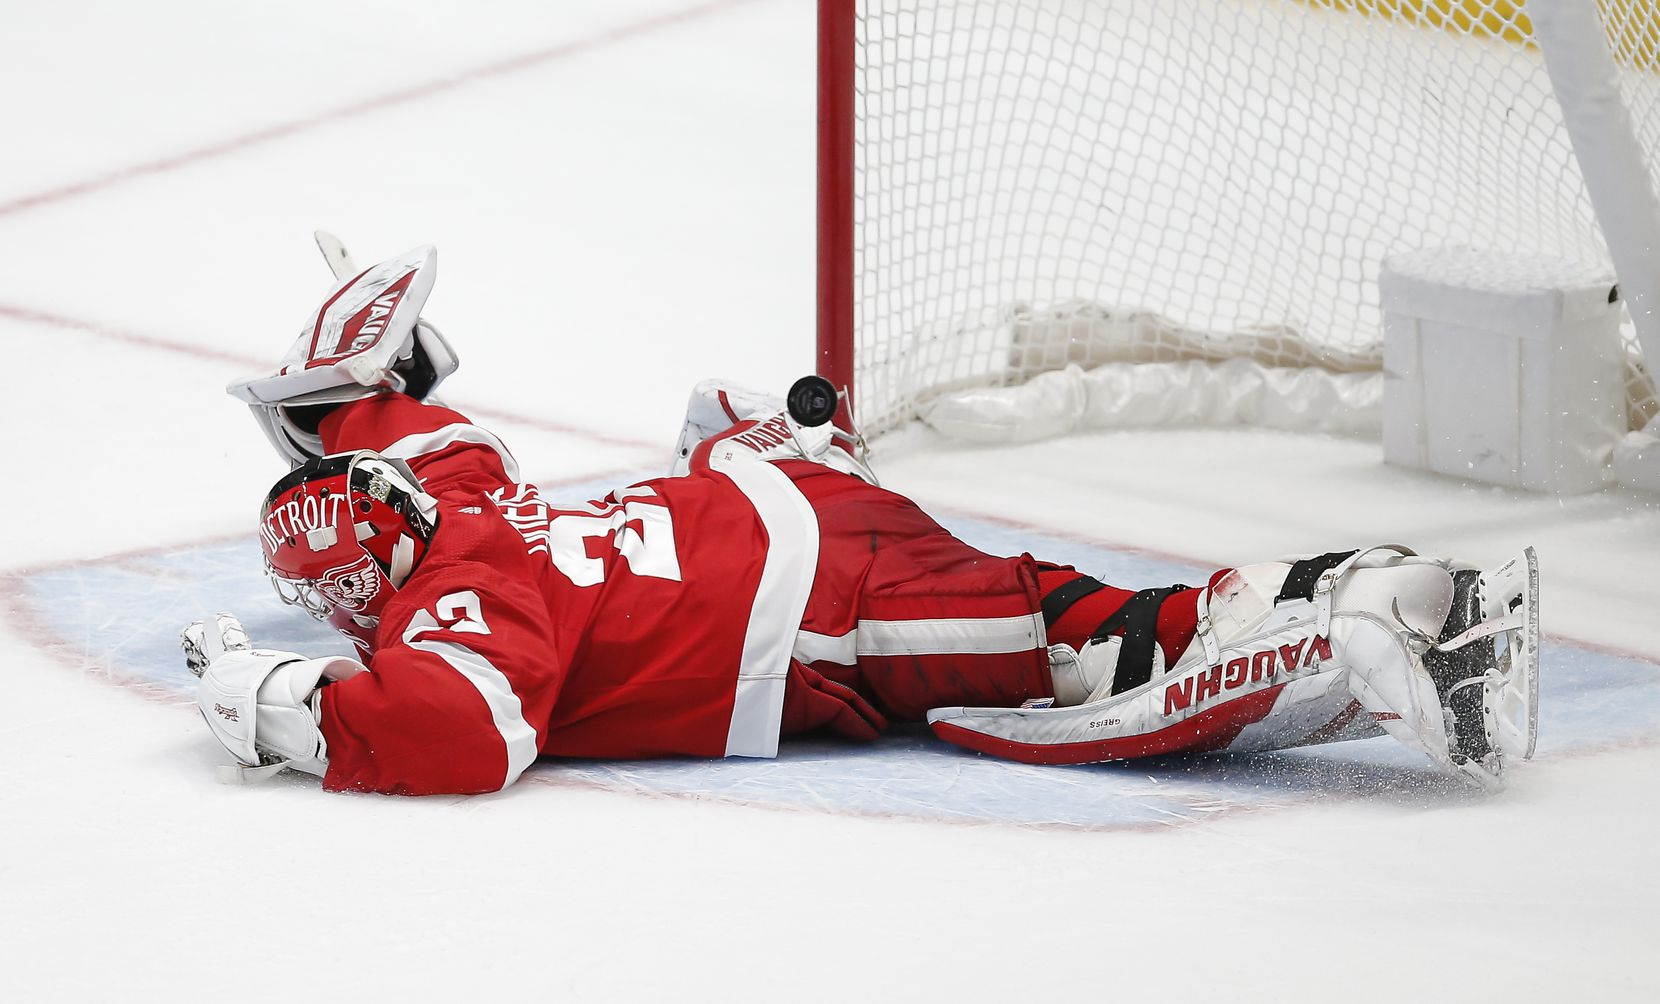 Detroit Red Wings goaltender Thomas Greiss (29) is unable to stop a shot from Dallas Stars forward Denis Gurianov during a shootout in an NHL hockey game in Dallas, Monday, April 19, 2021. Dallas won 3-2 in a shootout. (Brandon Wade/Special Contributor)